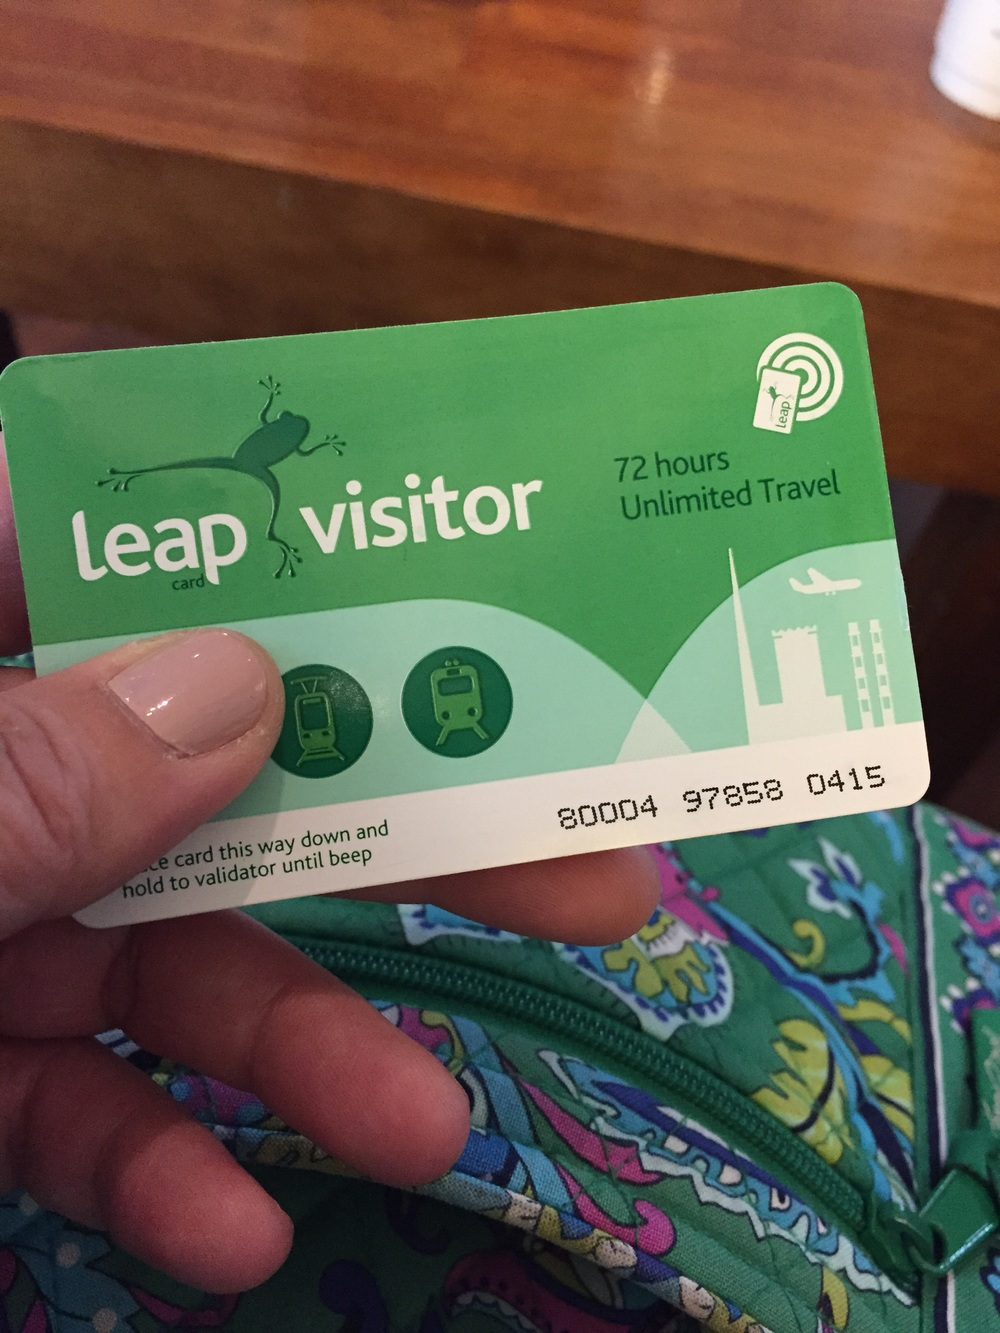 Leap Card...allows you access for any public transportation in Dublin...NOT cabs. We purchased it at the airport when we arrived.